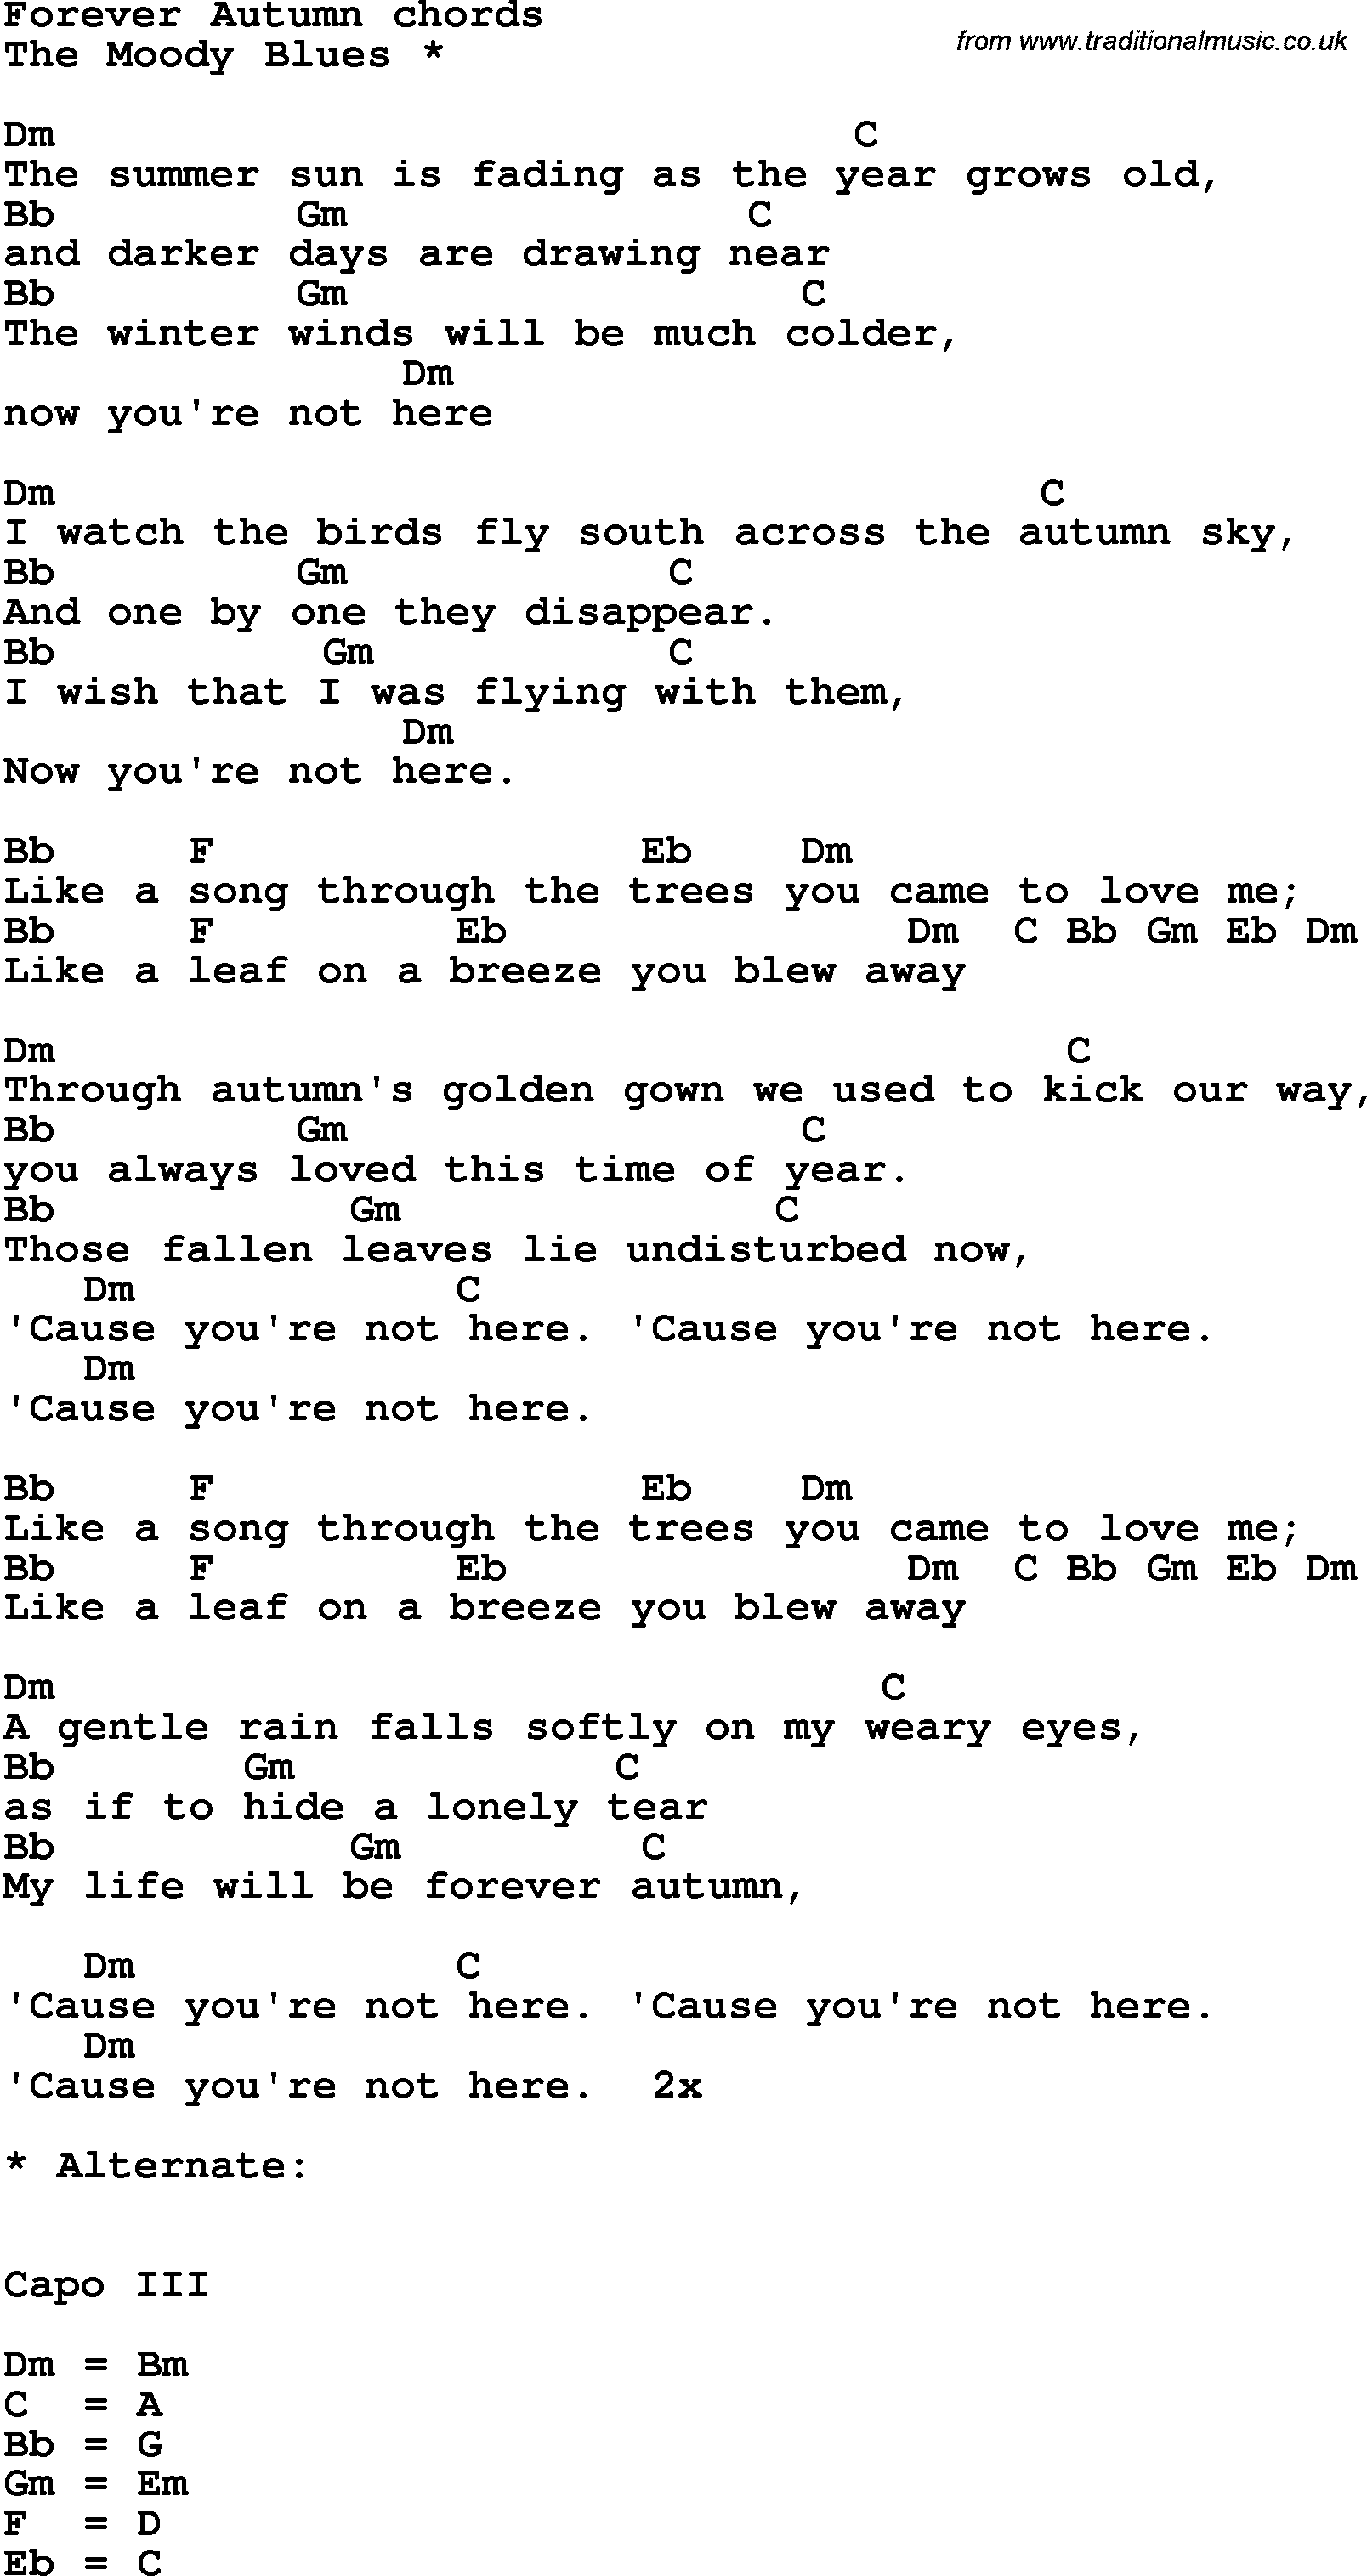 Song Lyrics With Guitar Chords For Forever Autumn